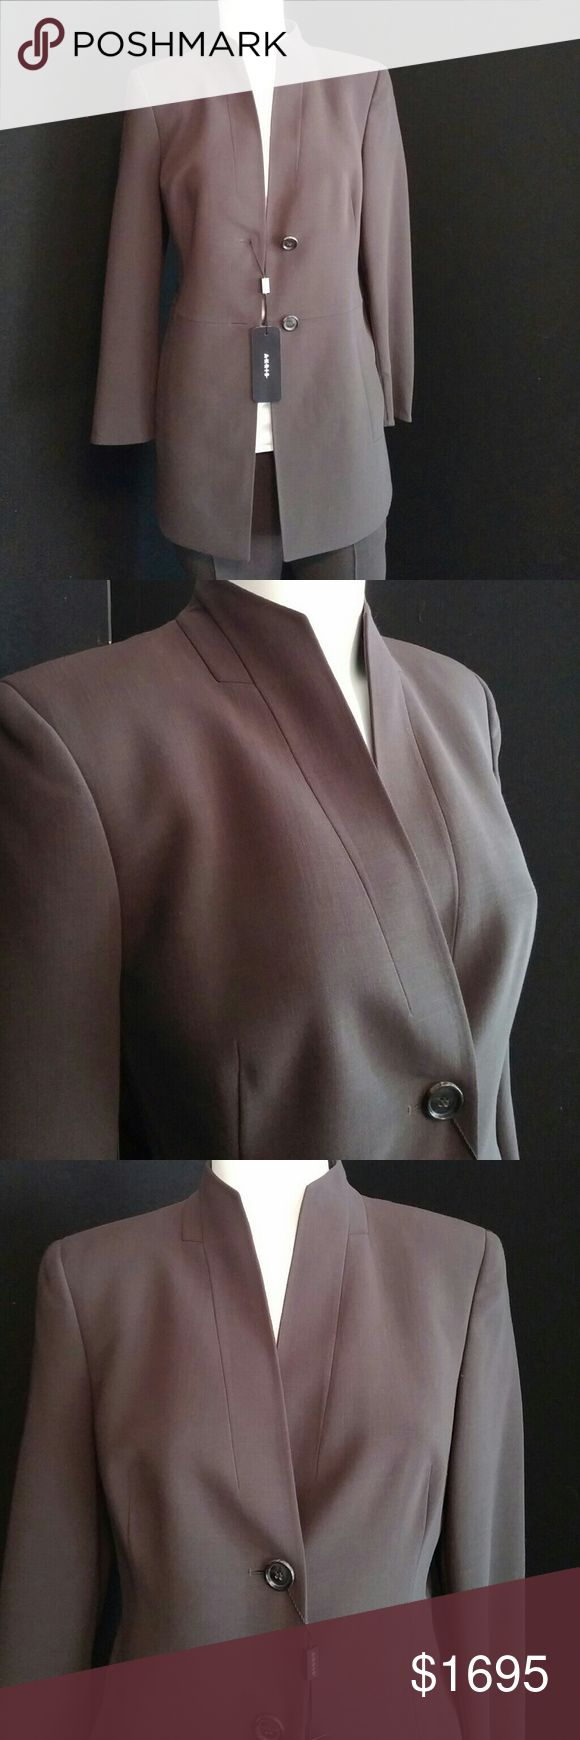 NWT Beautiful AKRIS mocha colored jacket This jacket is absolutely stunning. Long lovely lines make 4 a very slimming look. Comfortable fabric, two button with pockets. Jacket is size 6. It Retails for $3700. I also have pants listed that match in a size 4. Pants retail at $895. Please see listing. I will discount suit if you buy both items. Both items are new with tags. A very classic suit you can keep forever. Akris Jackets & Coats